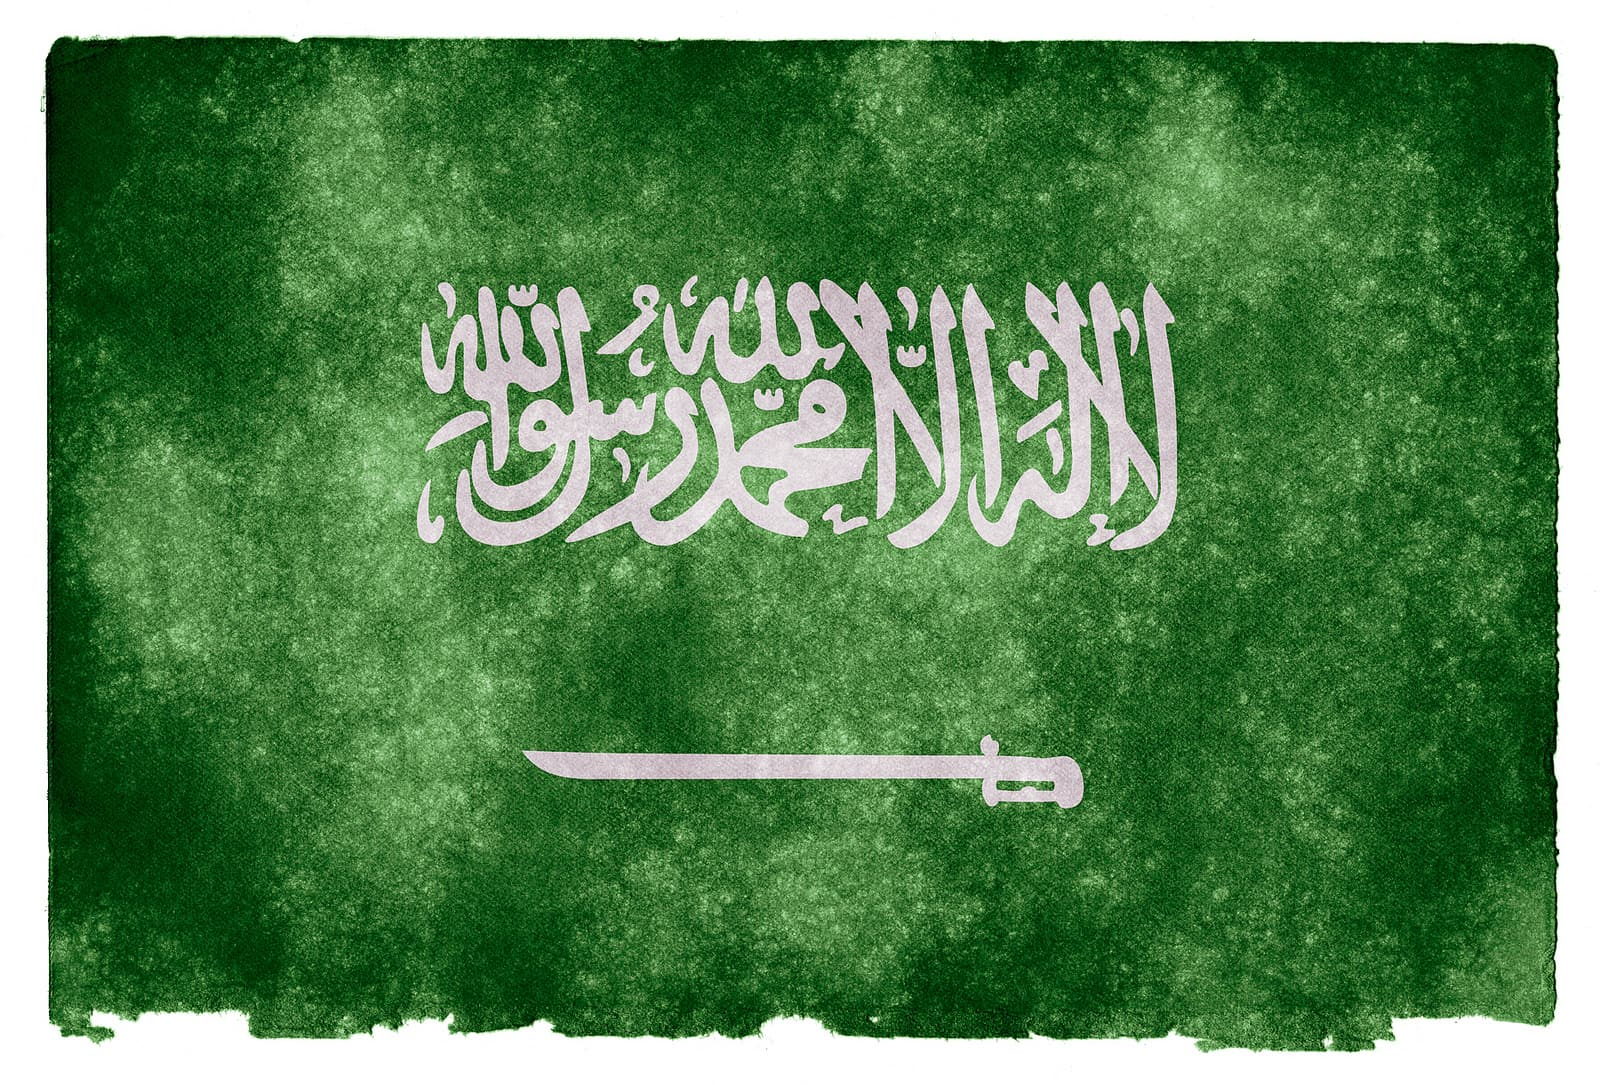 Best vpns for saudi arabia in 2018 unblock sites in the ksa saudi arabia ranks extremely poorly on internet freedoms with a litany of sites and social media apps blocked for residents throughout the country ccuart Gallery